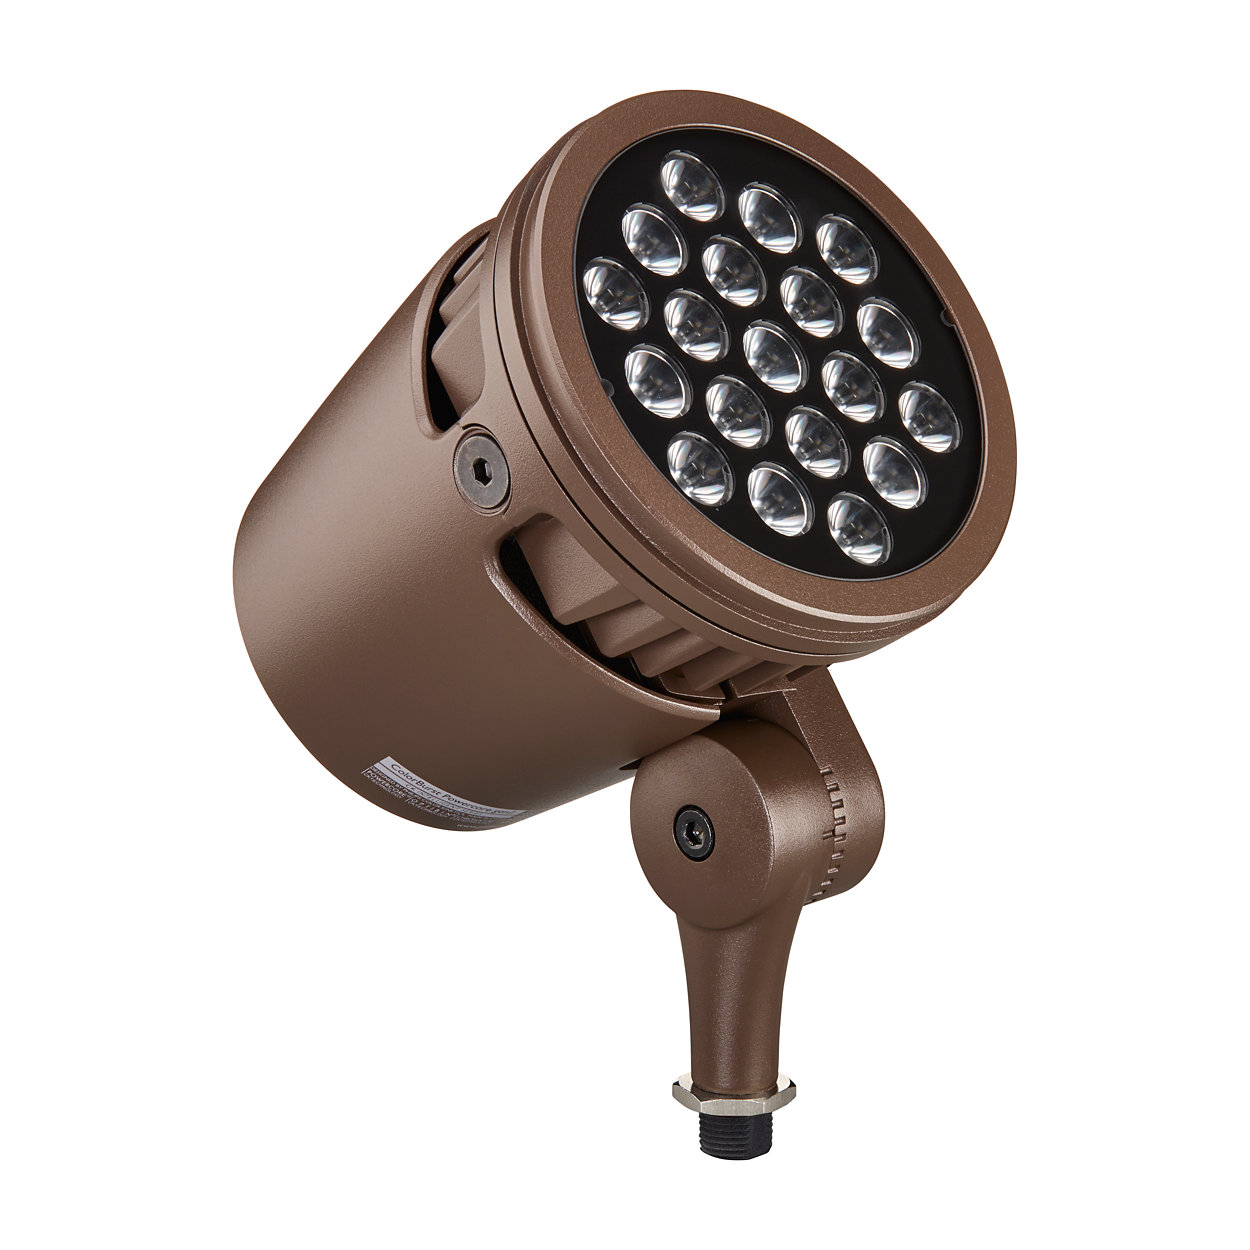 Architecturale LED-spotlight met intelligent gekleurd licht